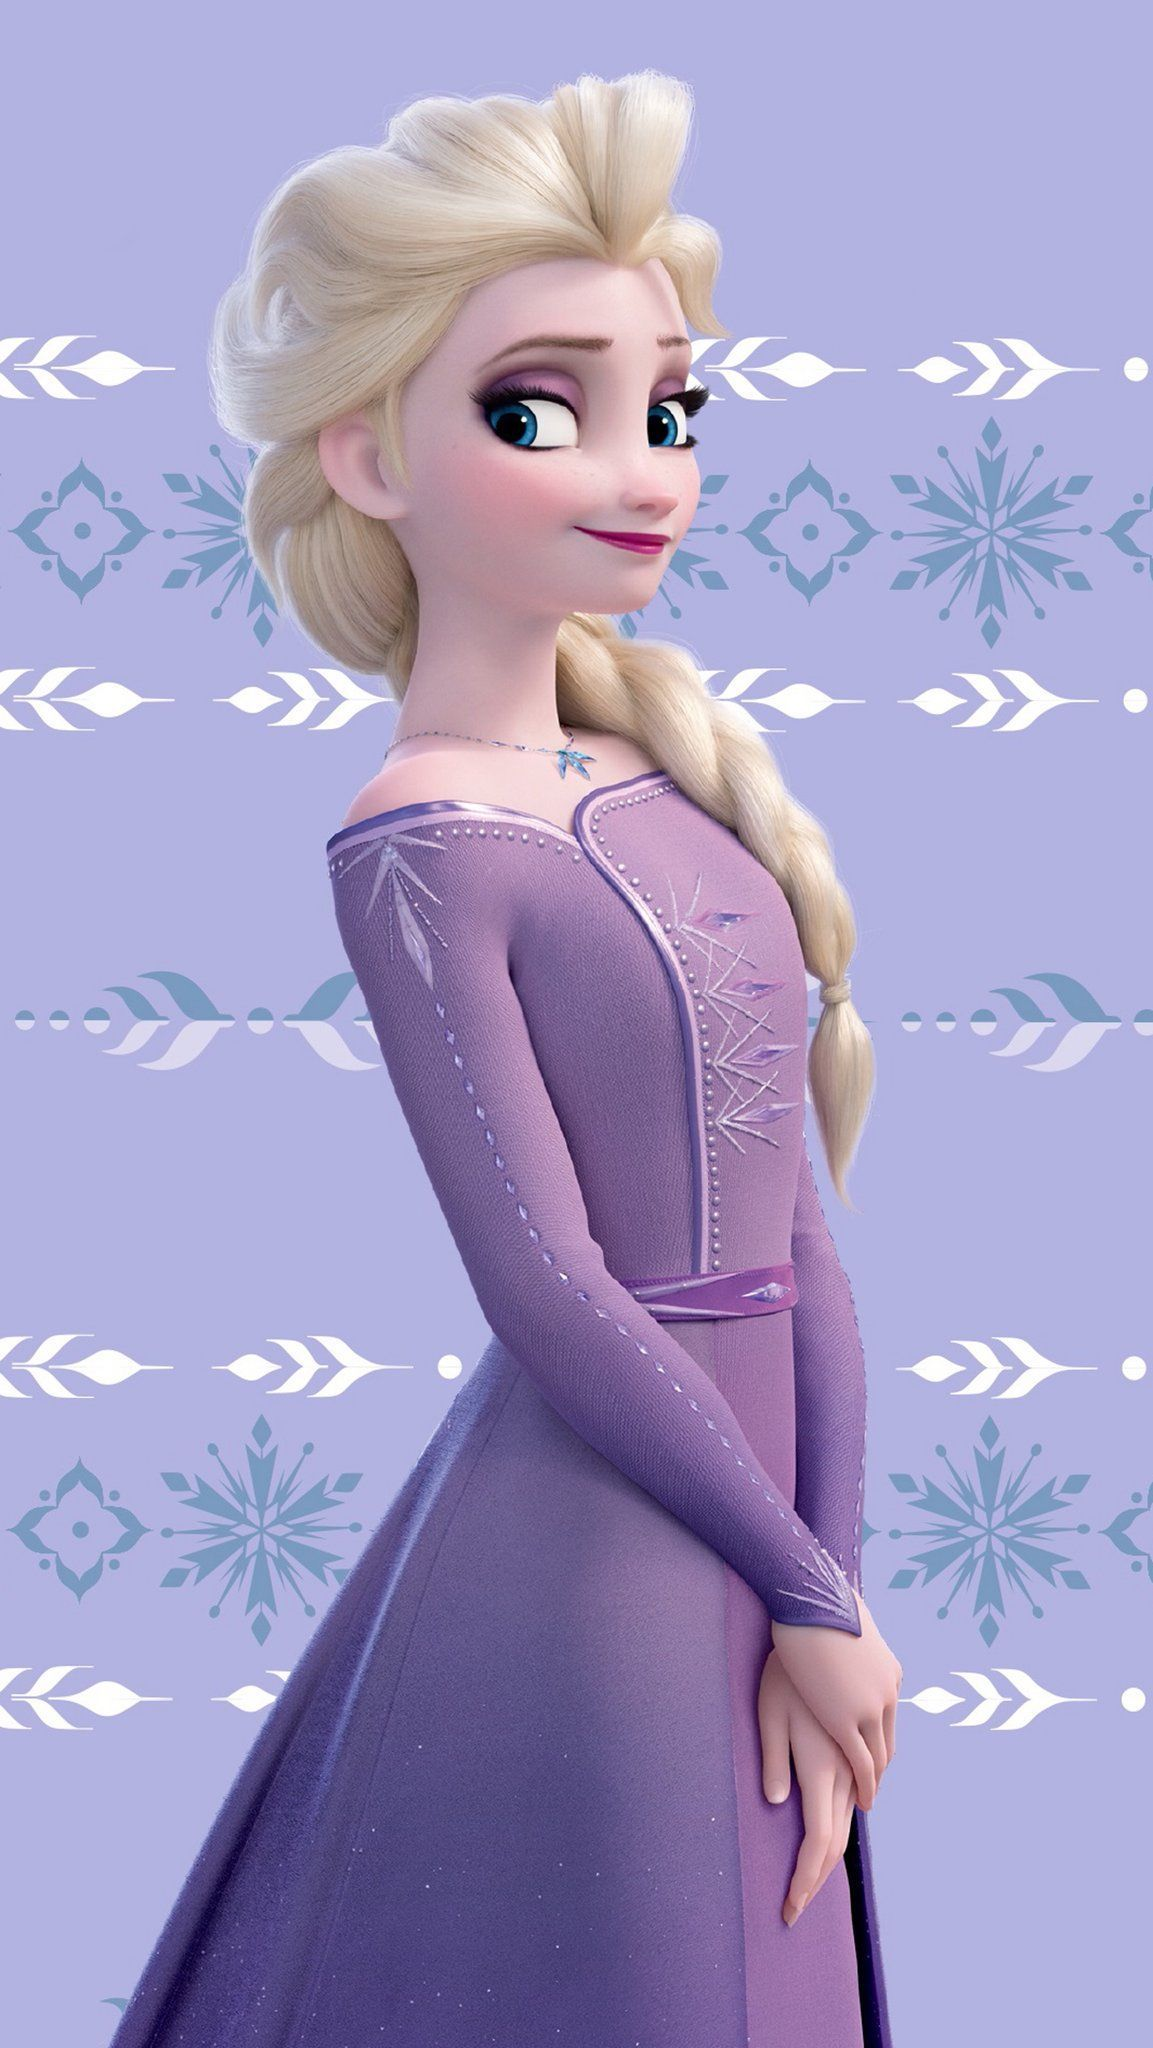 Sur Le Pont In 2020 Disney Princess Frozen Disney Princess Pictures Disney Princess Elsa